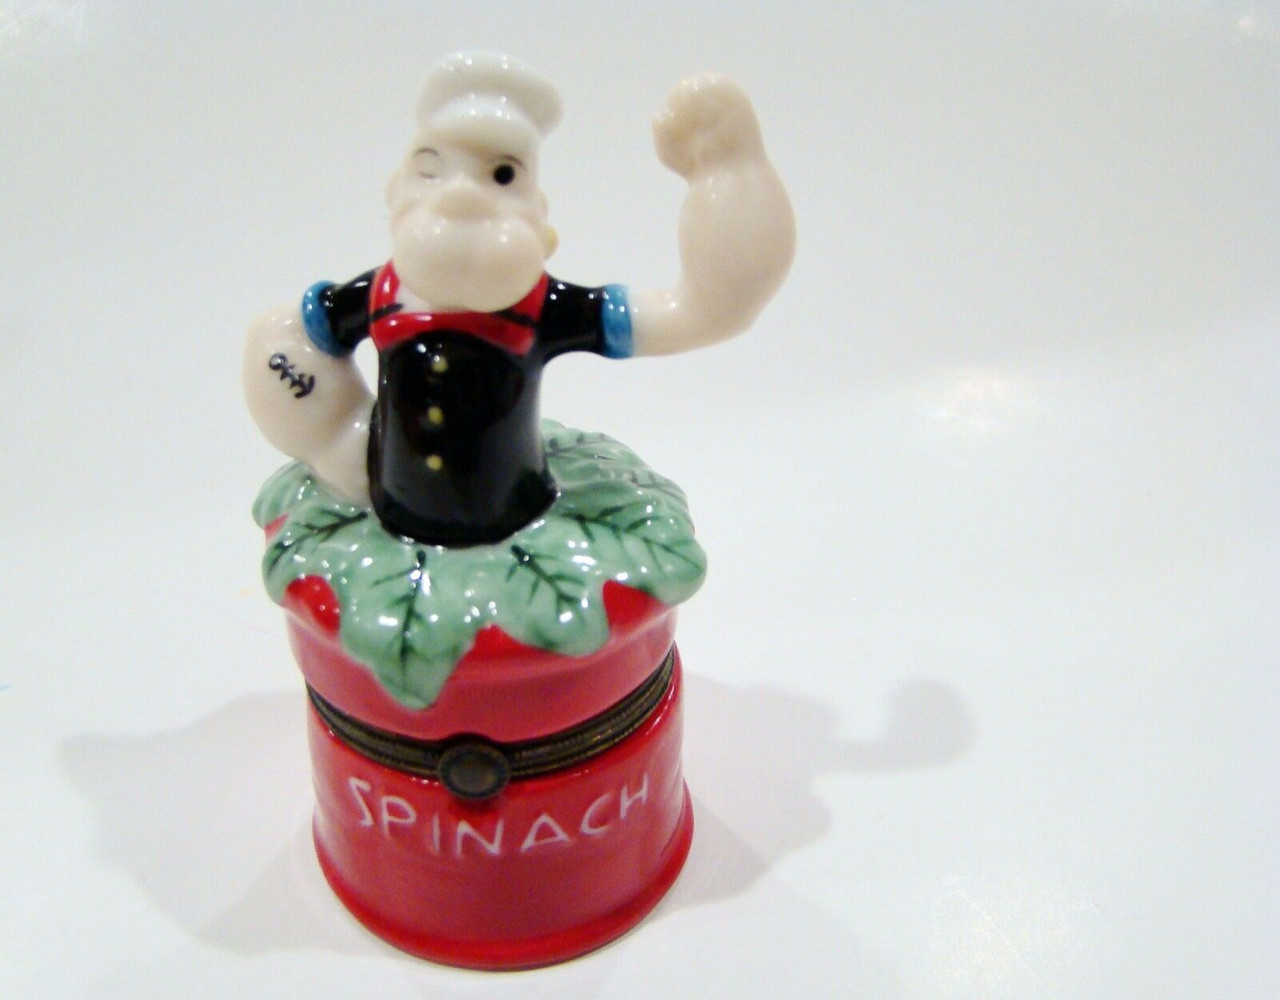 Popeye in Spinach Can Porcelain Hinged Box (P0207-KA)Popeye in Spinach Can Porcelain Hinged Box (P0207-KA)